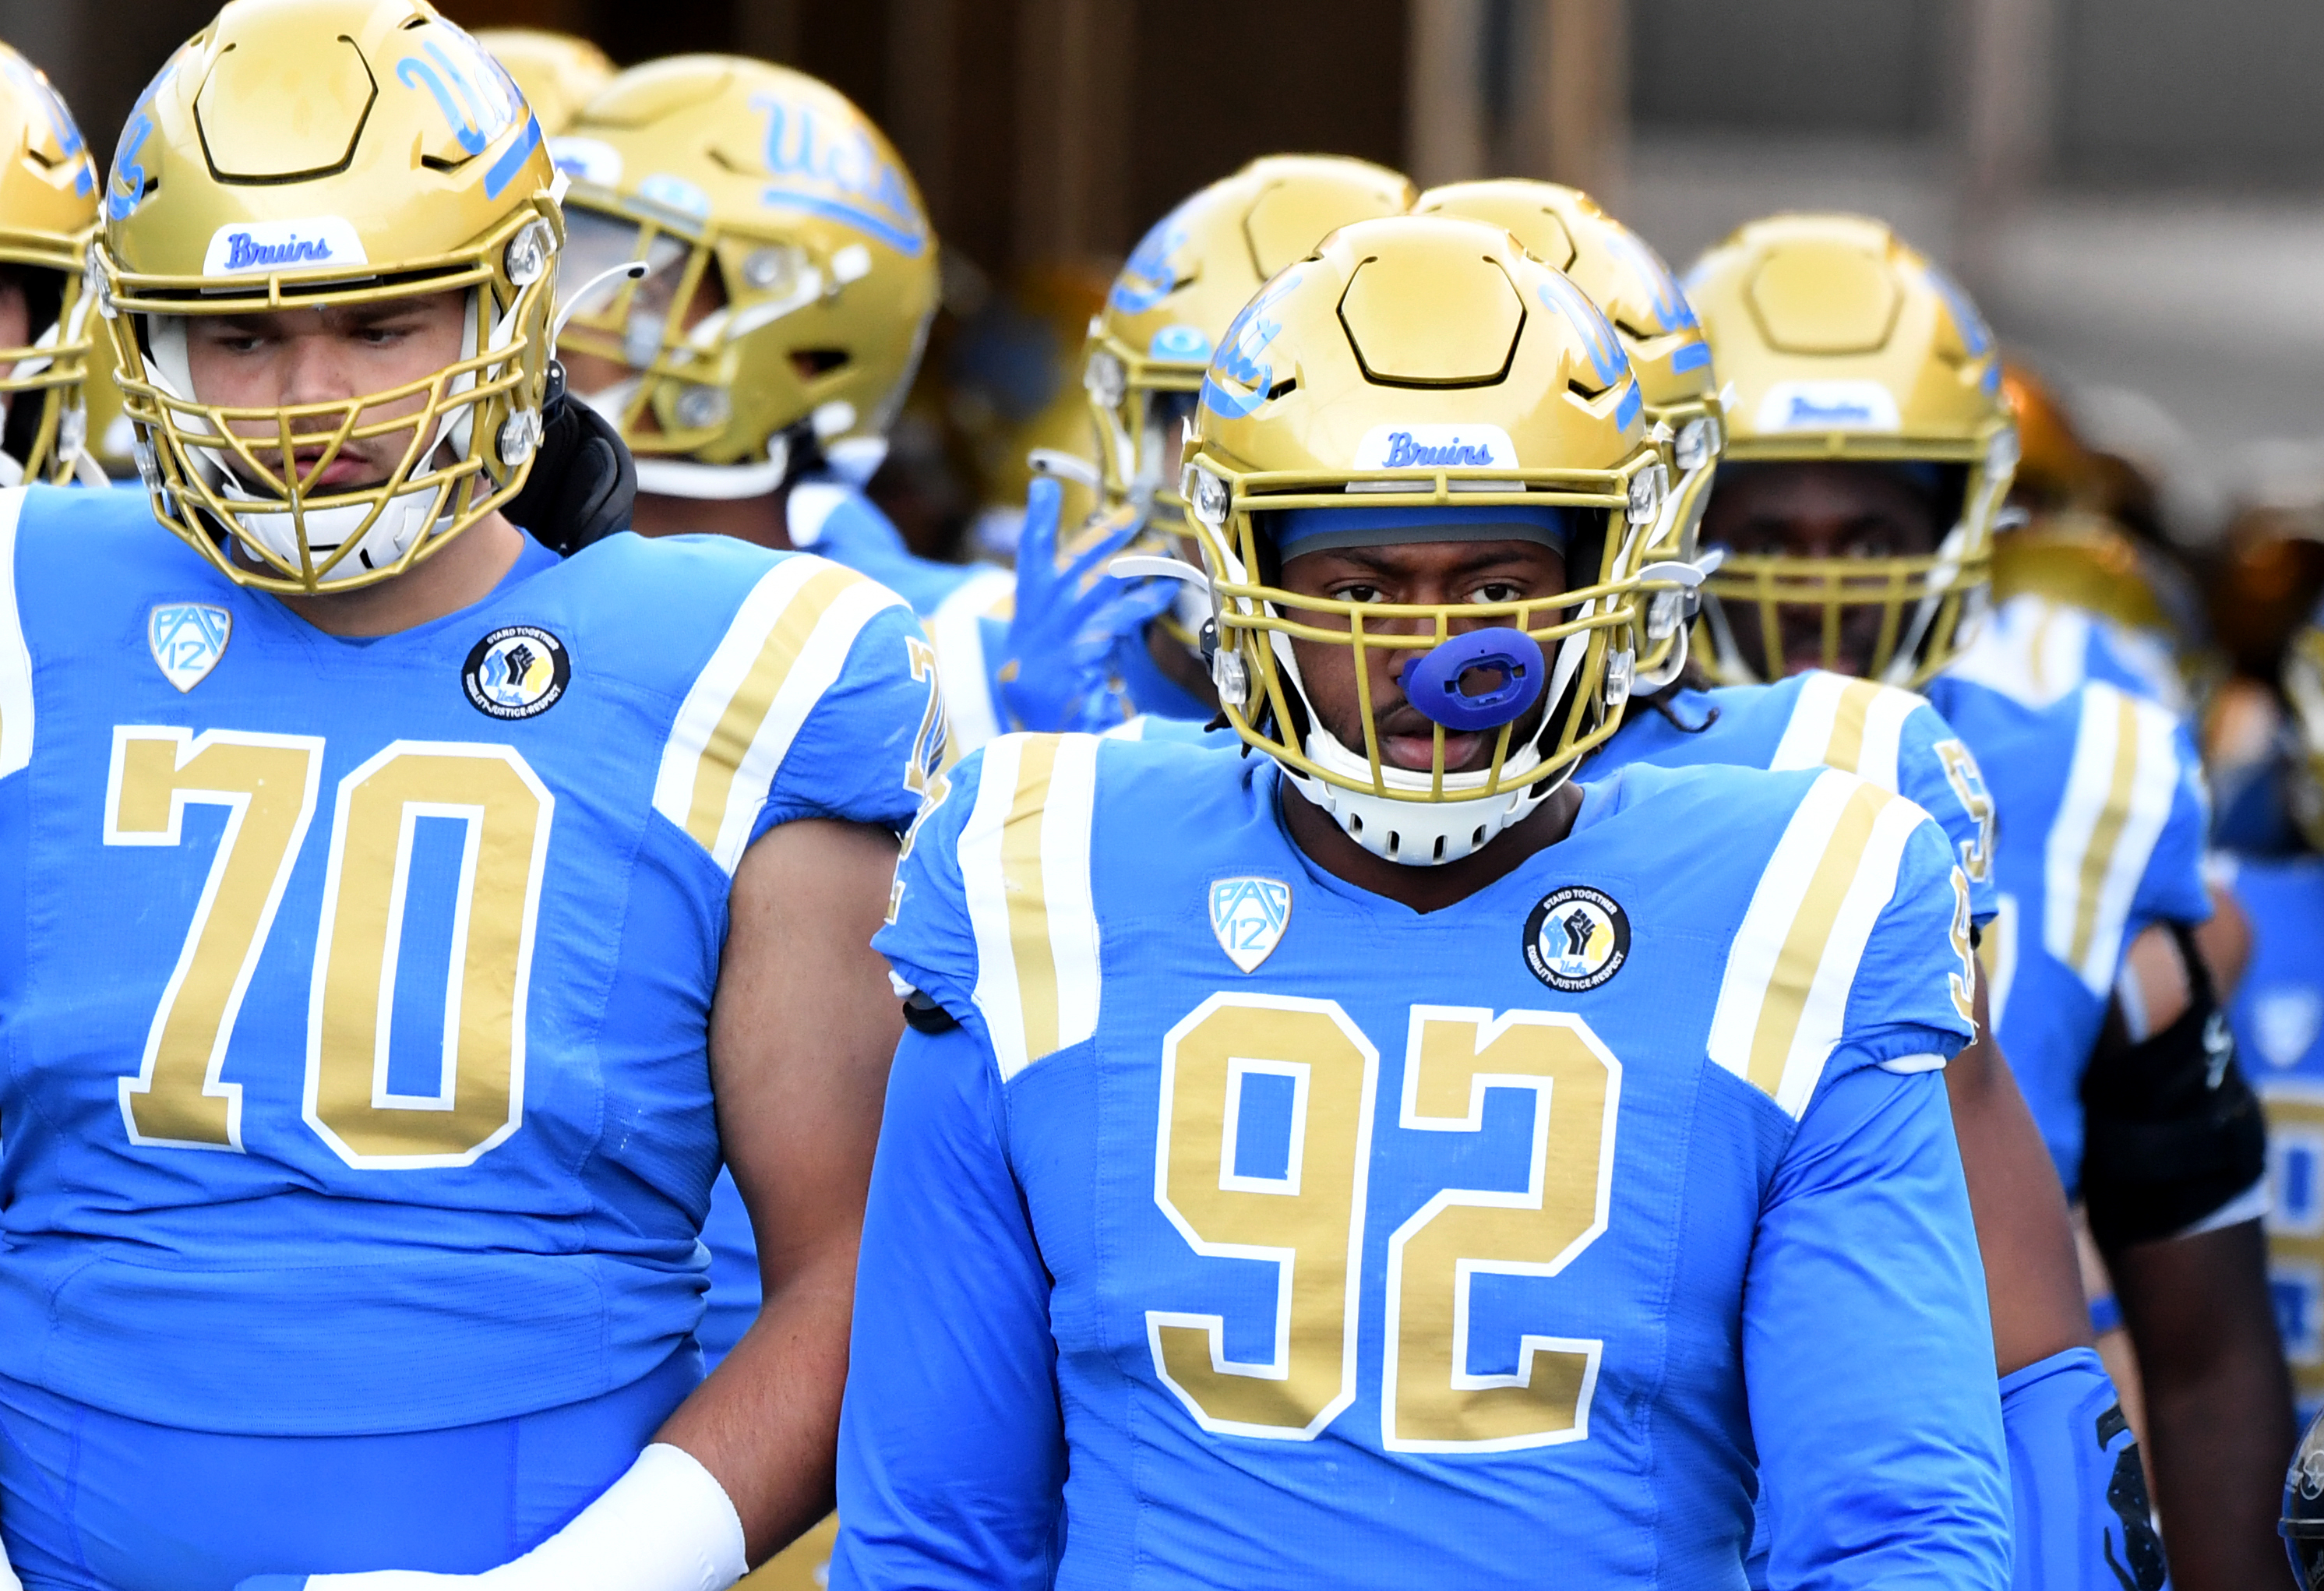 Stanford Cardinal defeated the UCLA Bruins 48-47 in overtime during a NCAA Football game at the Rose Bow.